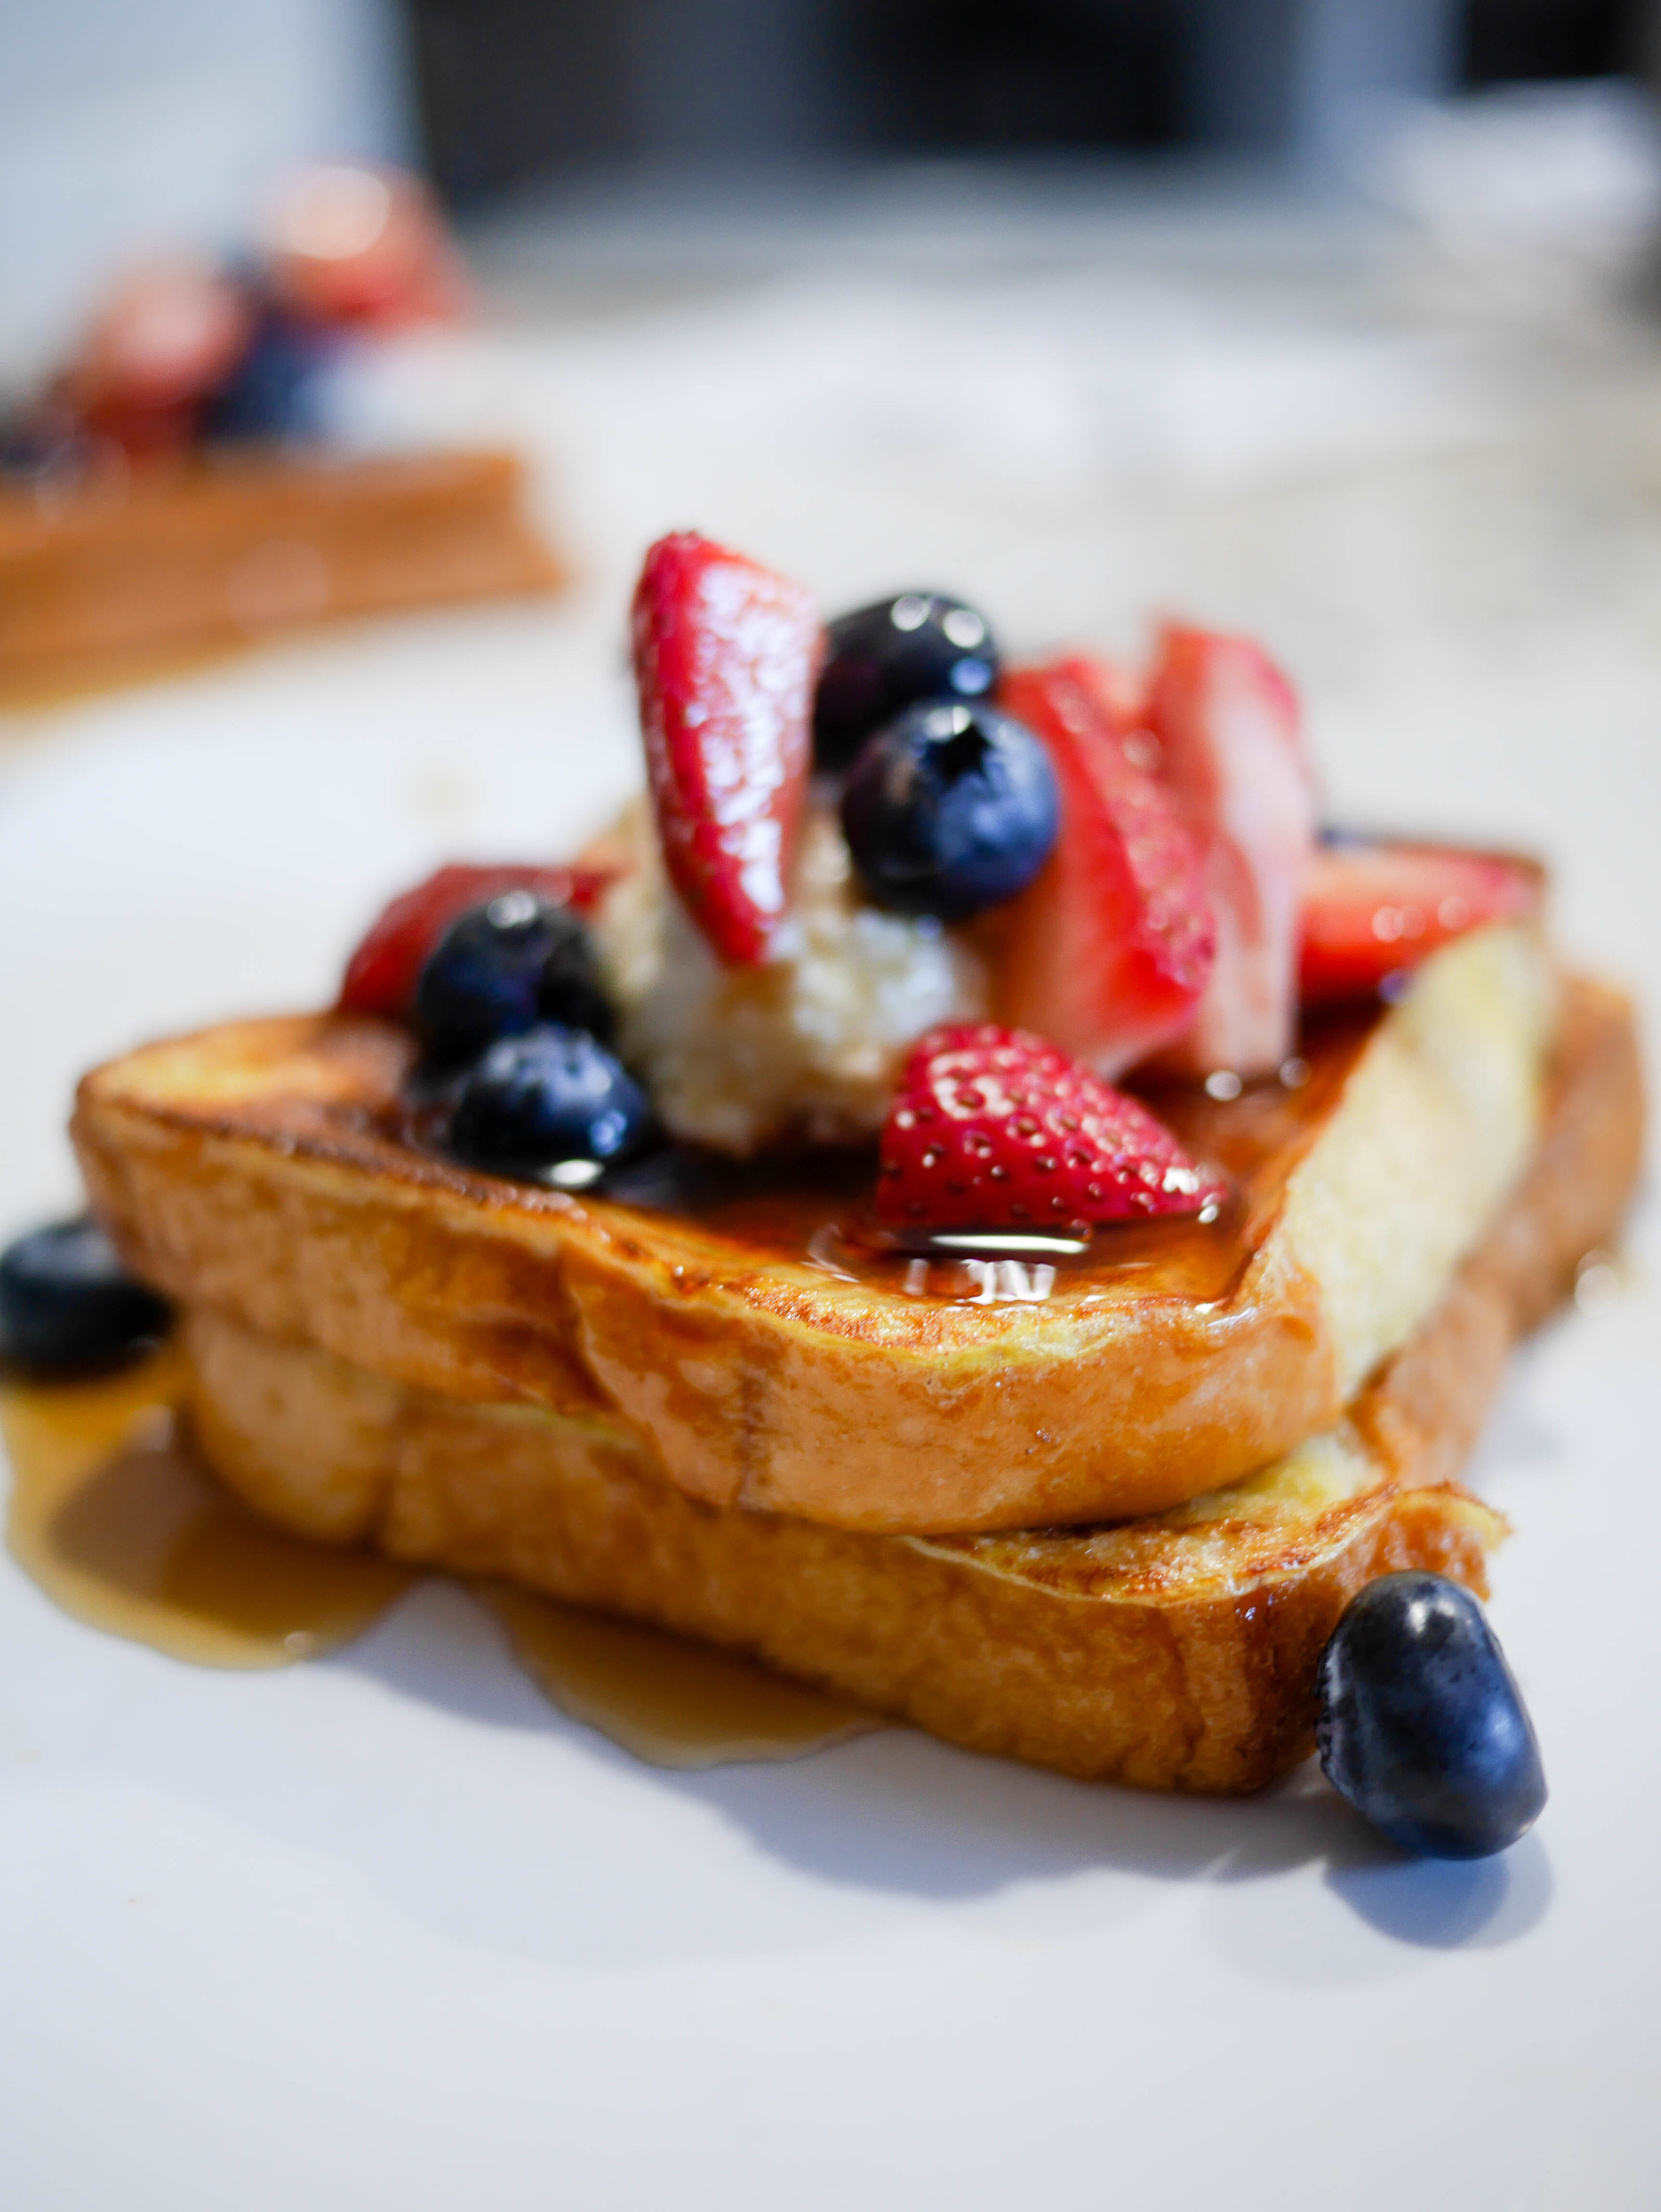 Replace the butter with our 4 ingredient cheesecake filling and you've got an upgraded french toast recipe fit for company.